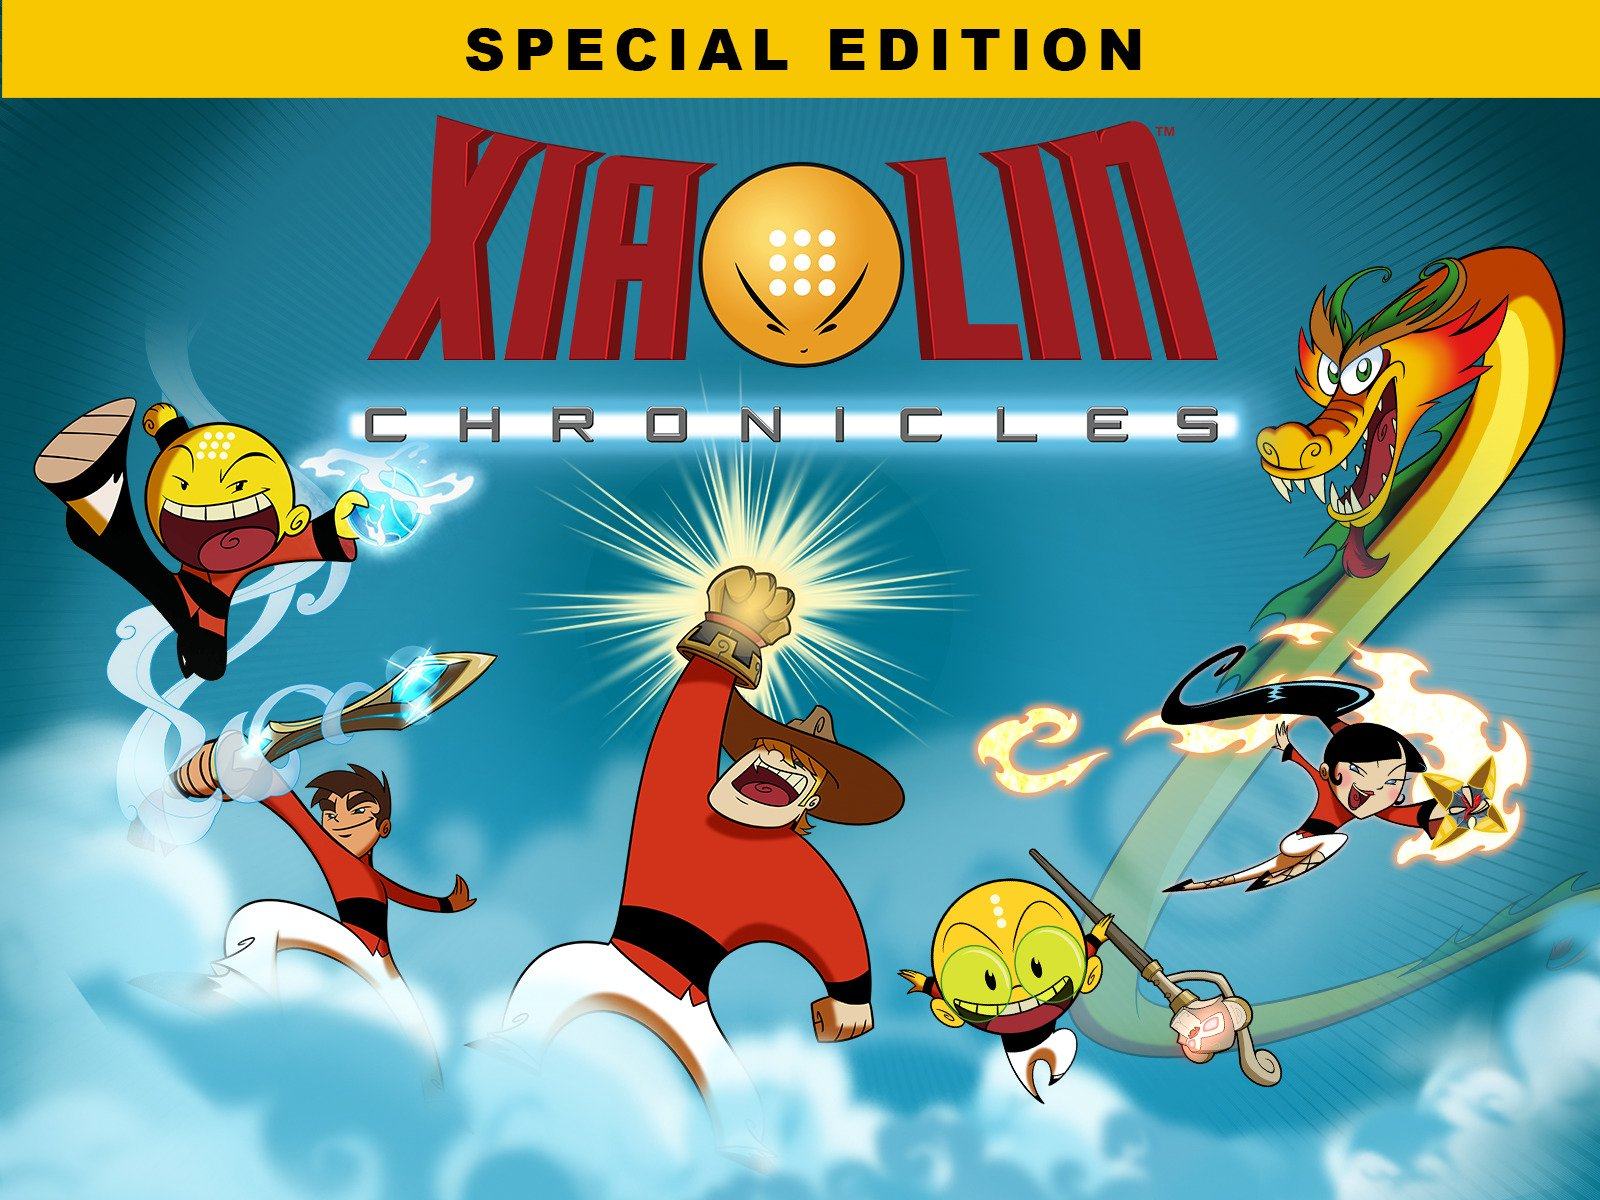 Xiaolin Chronicles: Special Edition on Amazon Prime Video UK